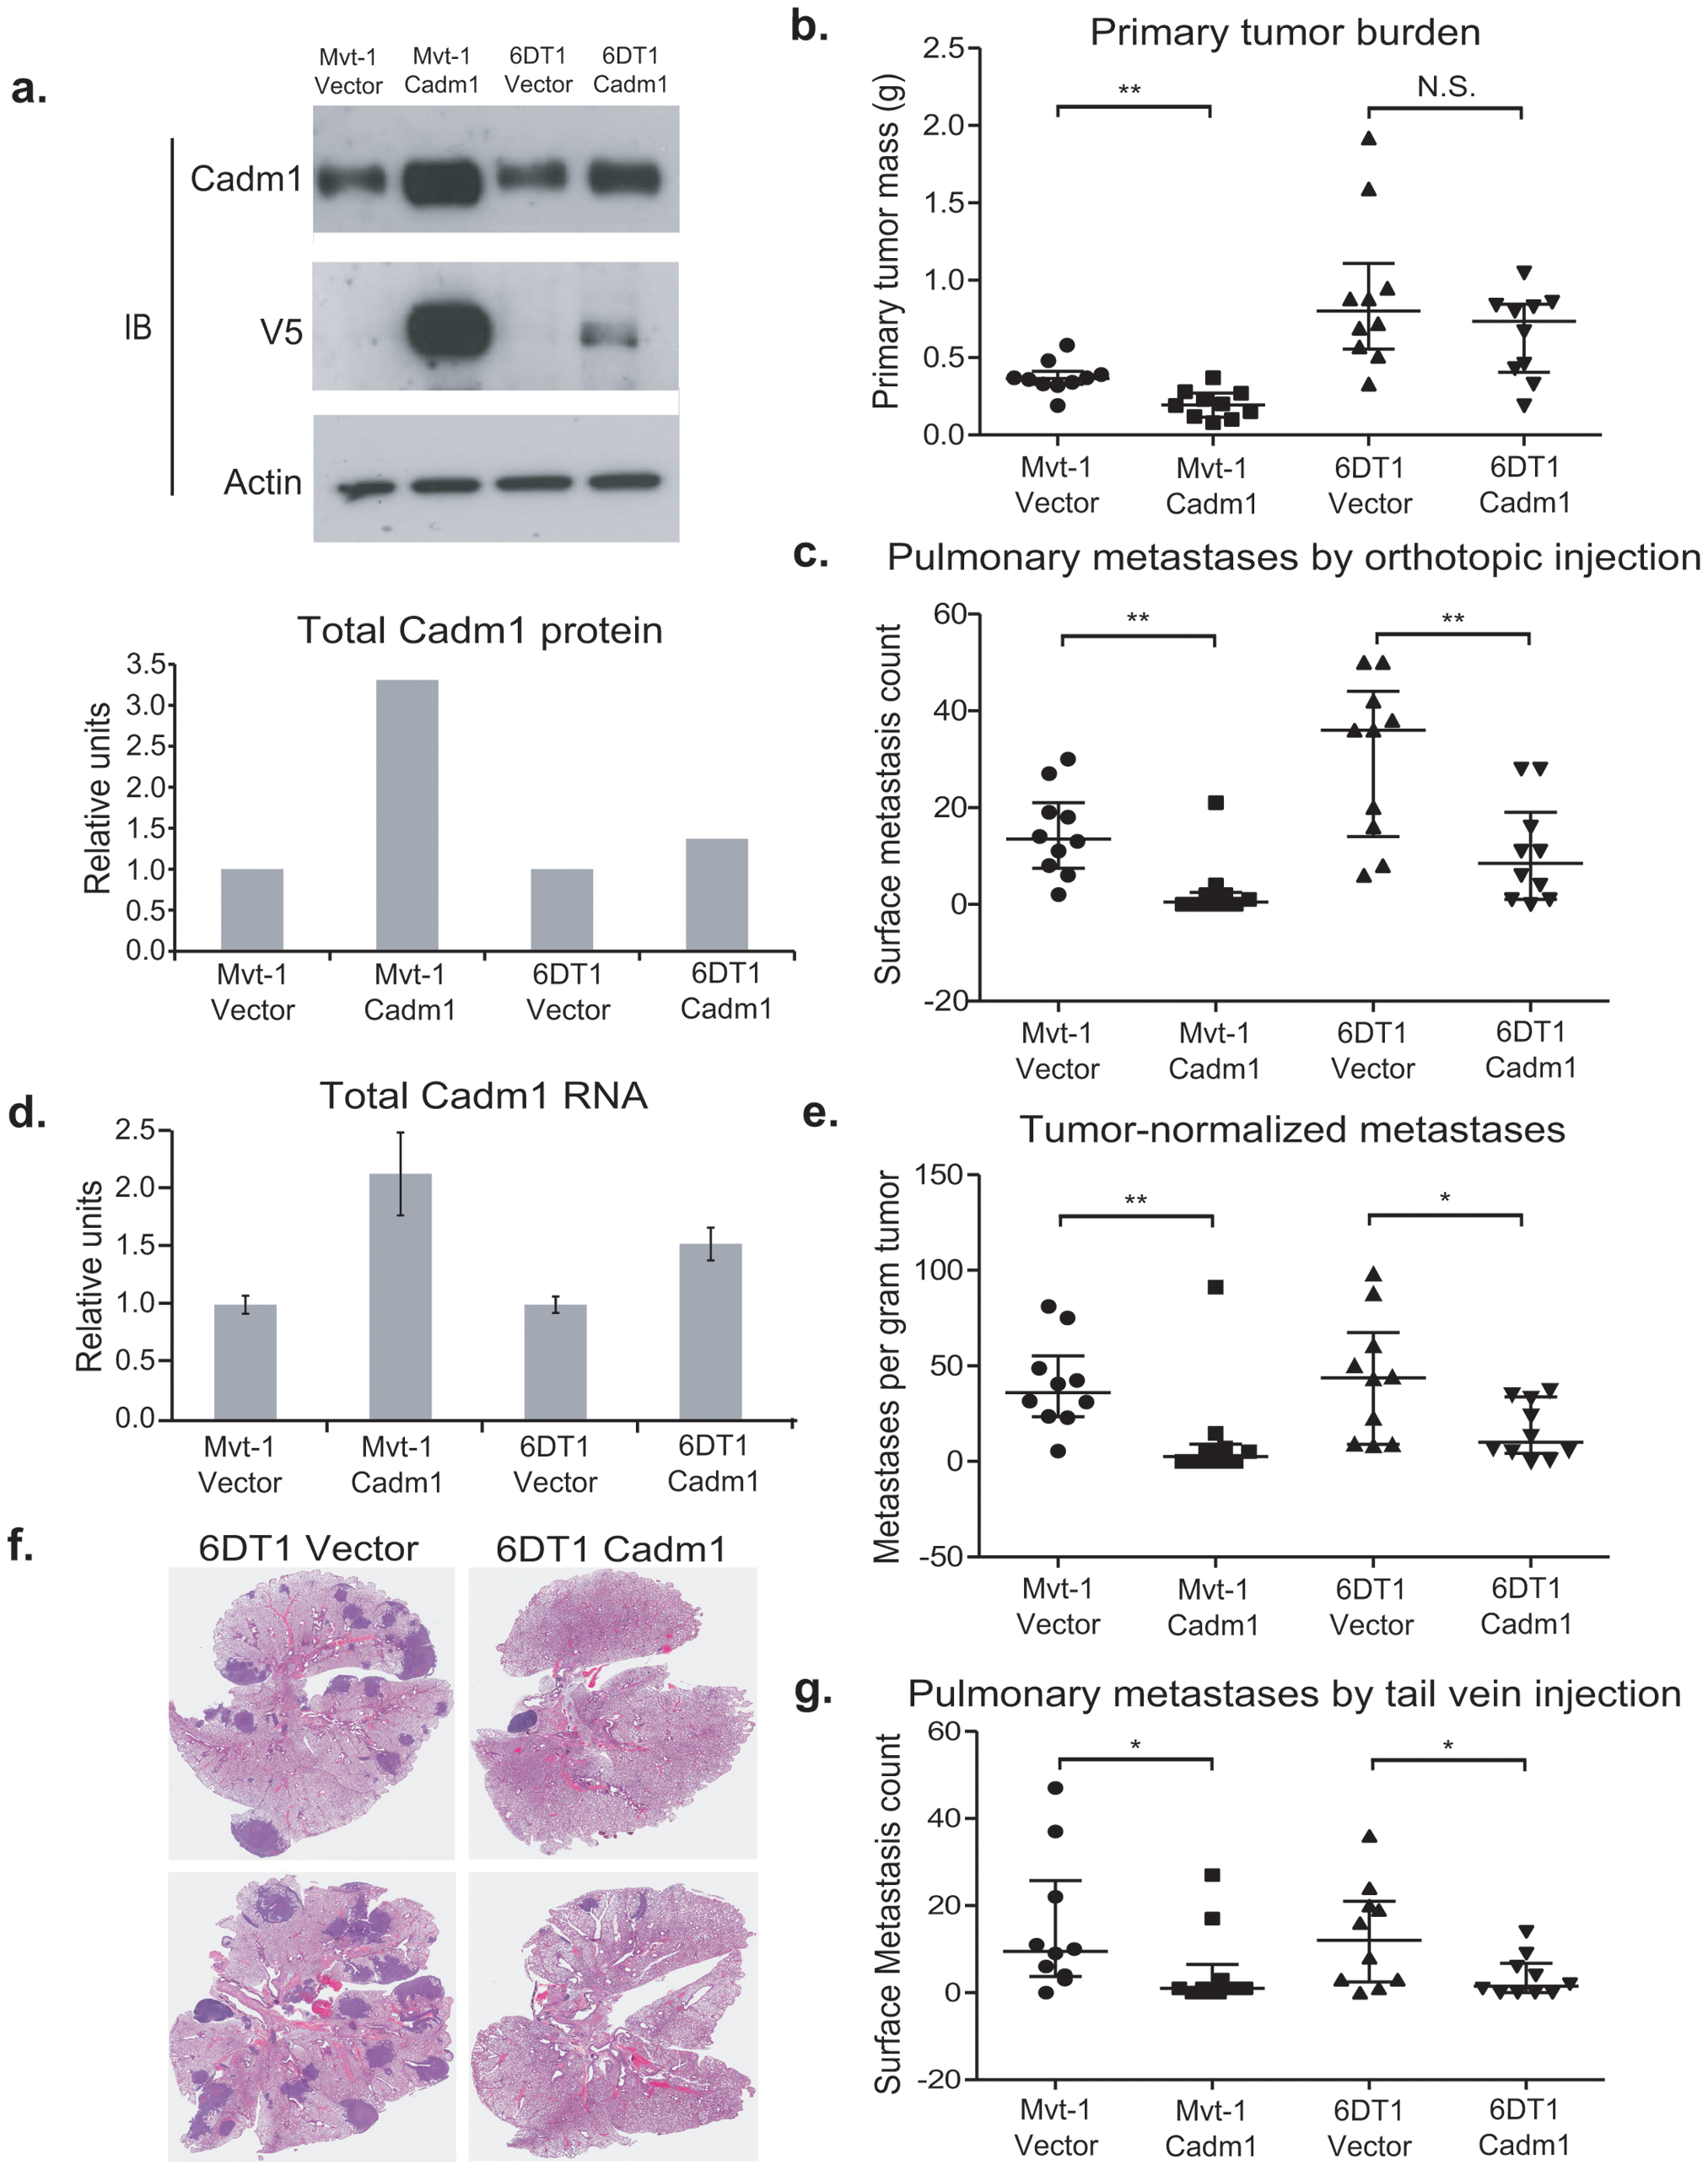 The effect of <i>Cadm1</i> over-expression on tumor growth and metastasis <i>in vivo</i>.